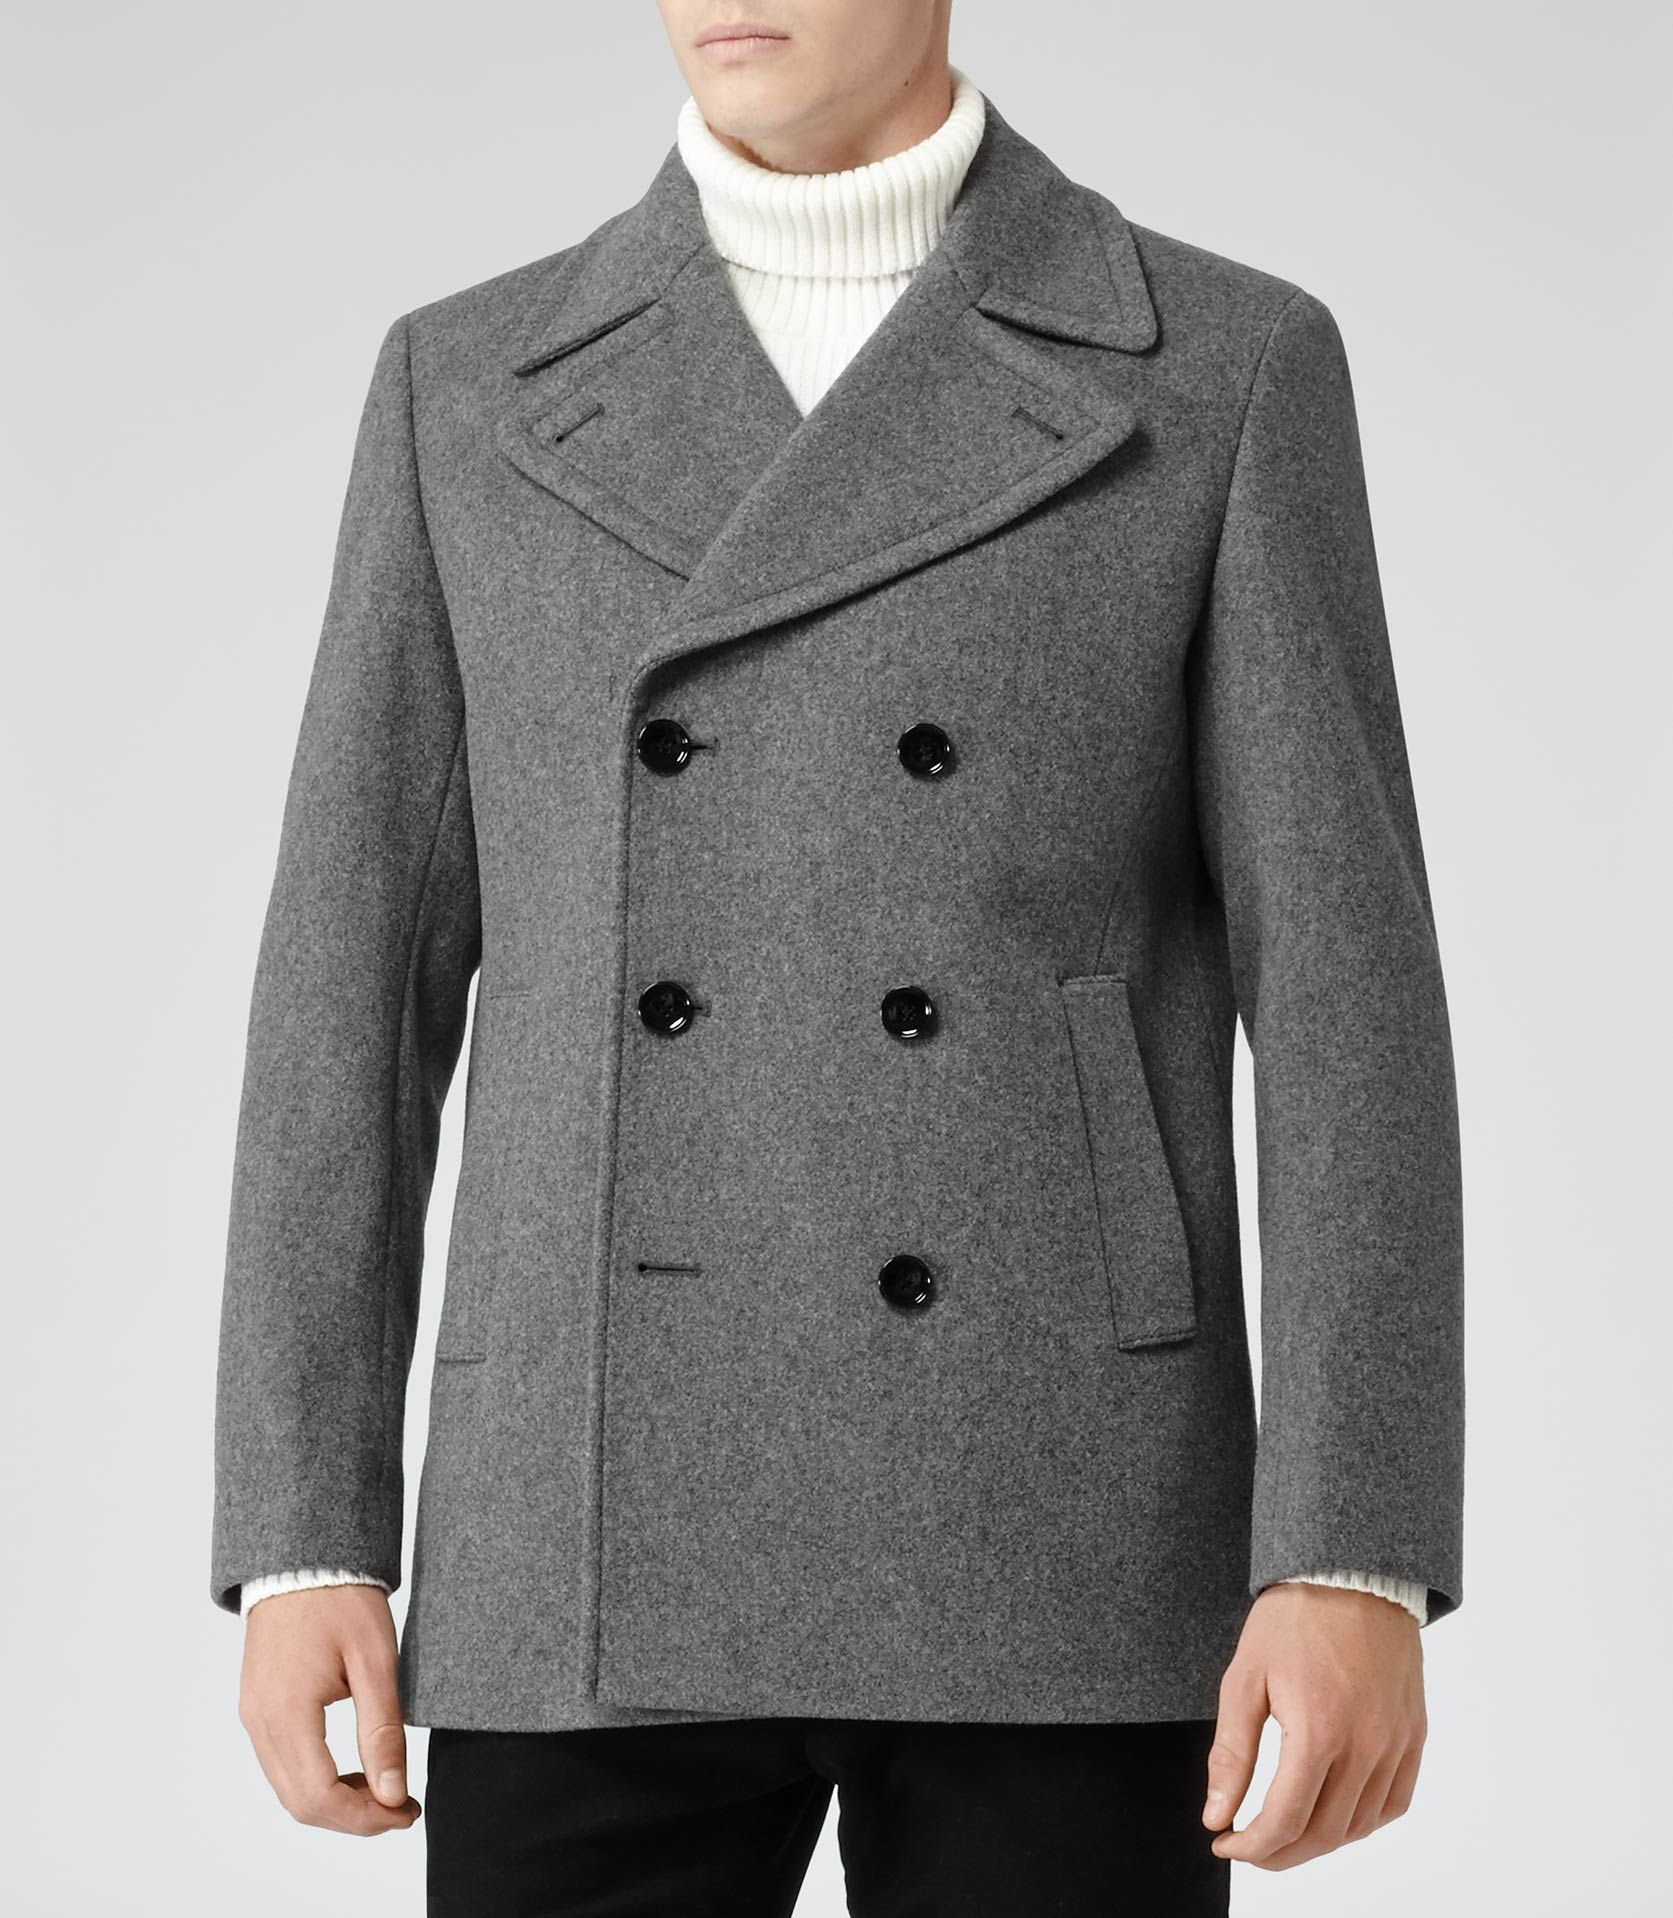 Mens Grey Wool-rich Peacoat - Reiss Roman | Z shopping | Pinterest ...